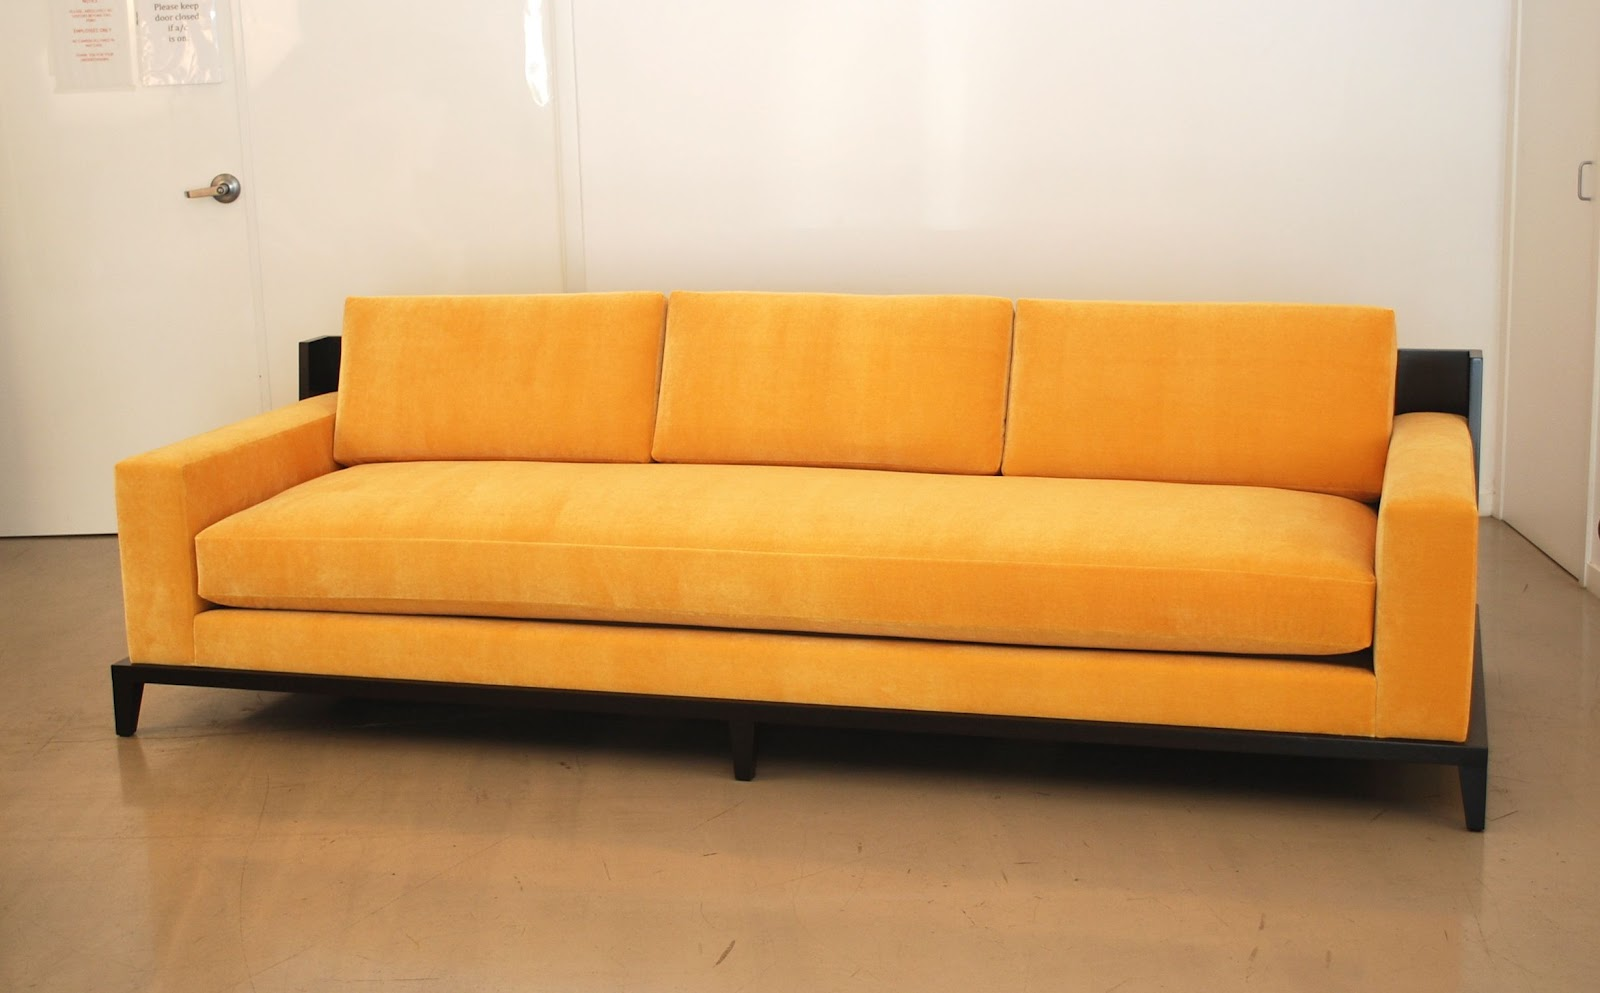 classic design: Custom Sofa with Wood Framed Back